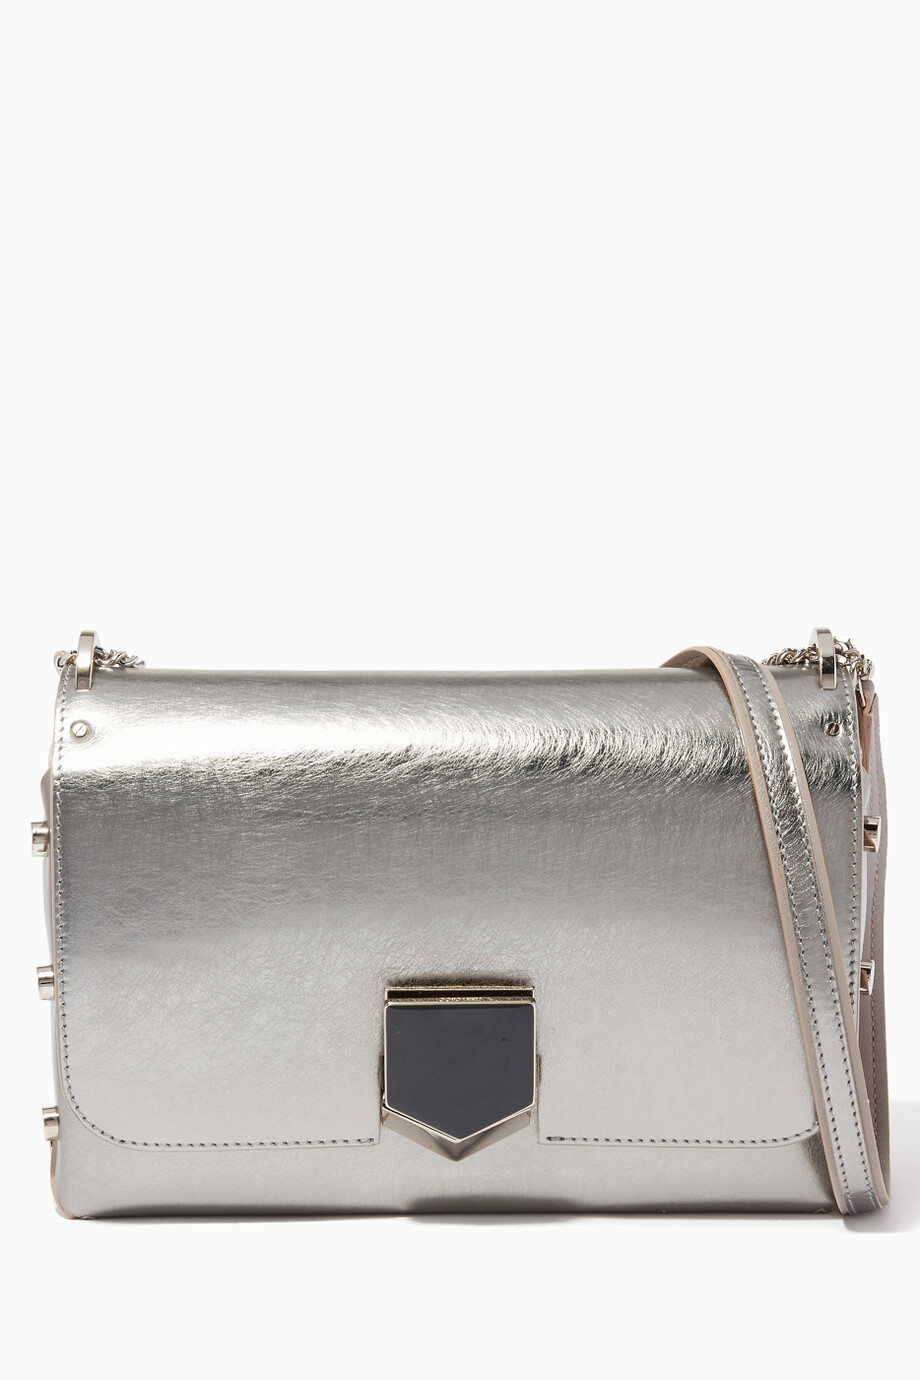 modern techniques exquisite style meet Shop Jimmy Choo Silver Vintage Silver Lockett City Leather ...